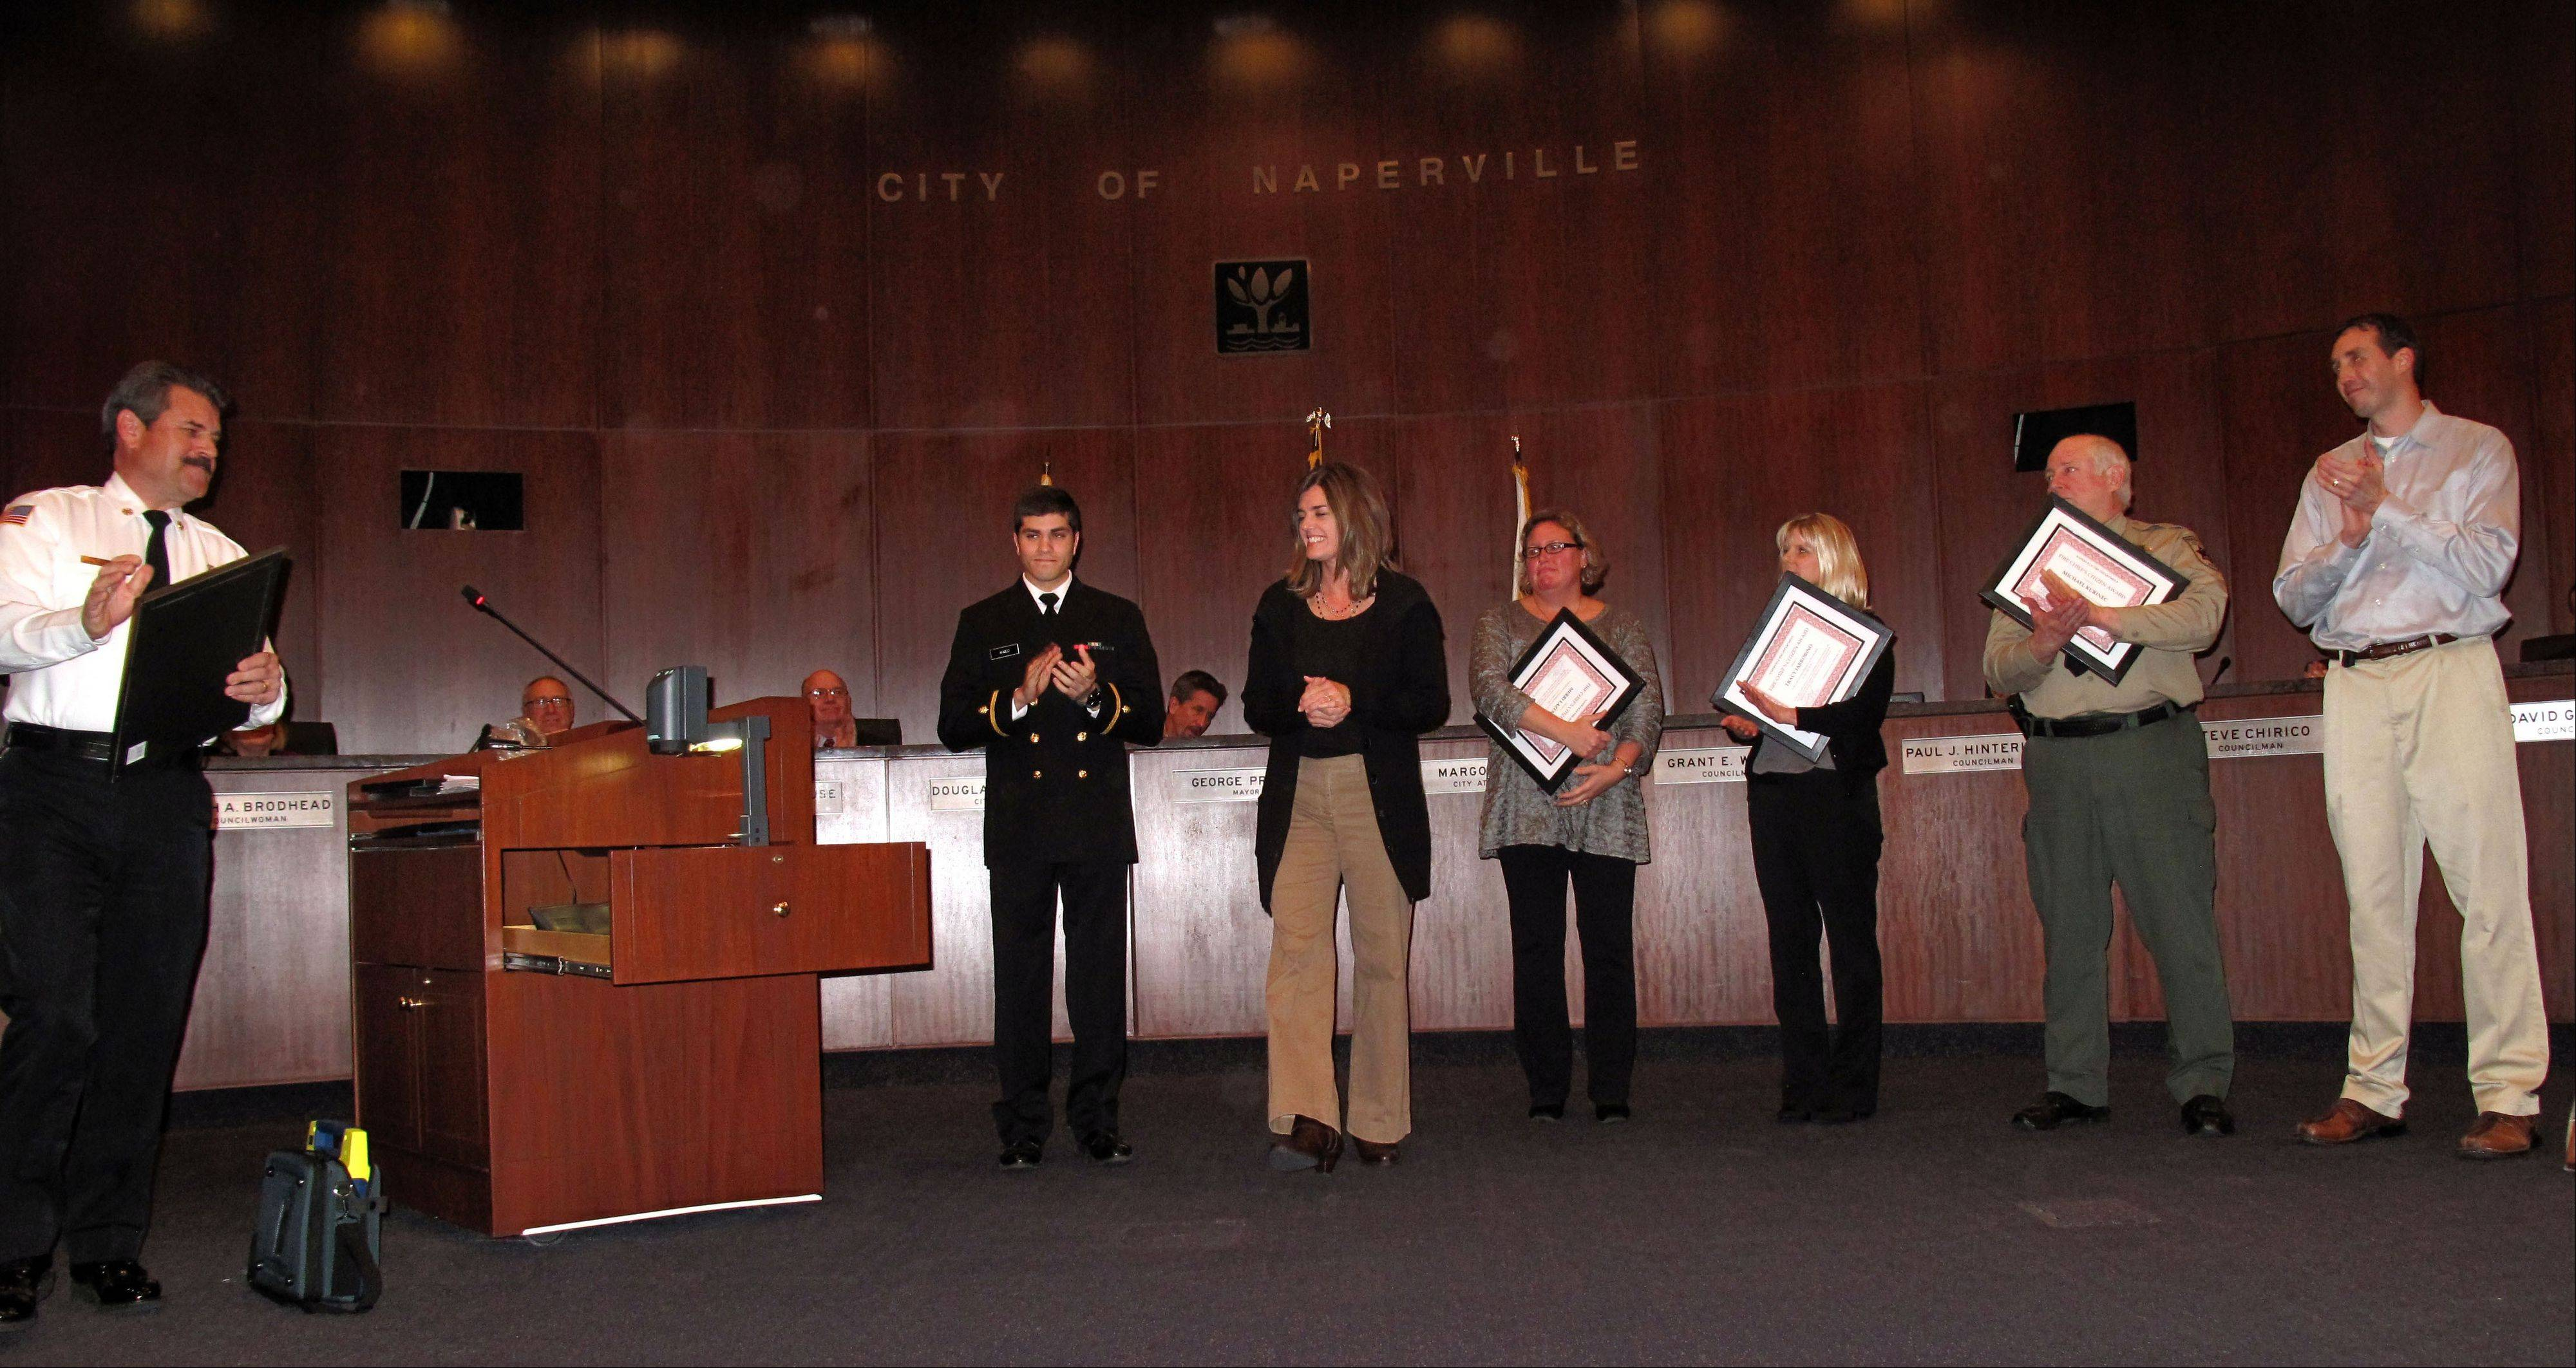 Naperville fire Chief Mark Puknaitis recognizes several nurses, a park district police officer and a Navy reservist for helping save the life of Steve Sloma of Geneva, far right, who went into sudden cardiac arrest around Mile 6 of the half marathon during the inaugural Edward Hospital Naperville Marathon on Nov. 10. Those recognized Tuesday include Yousef Ahmed, Stephanie Chang, Merri Lazenby, Traci Iarrobino and Michael Kurinec.